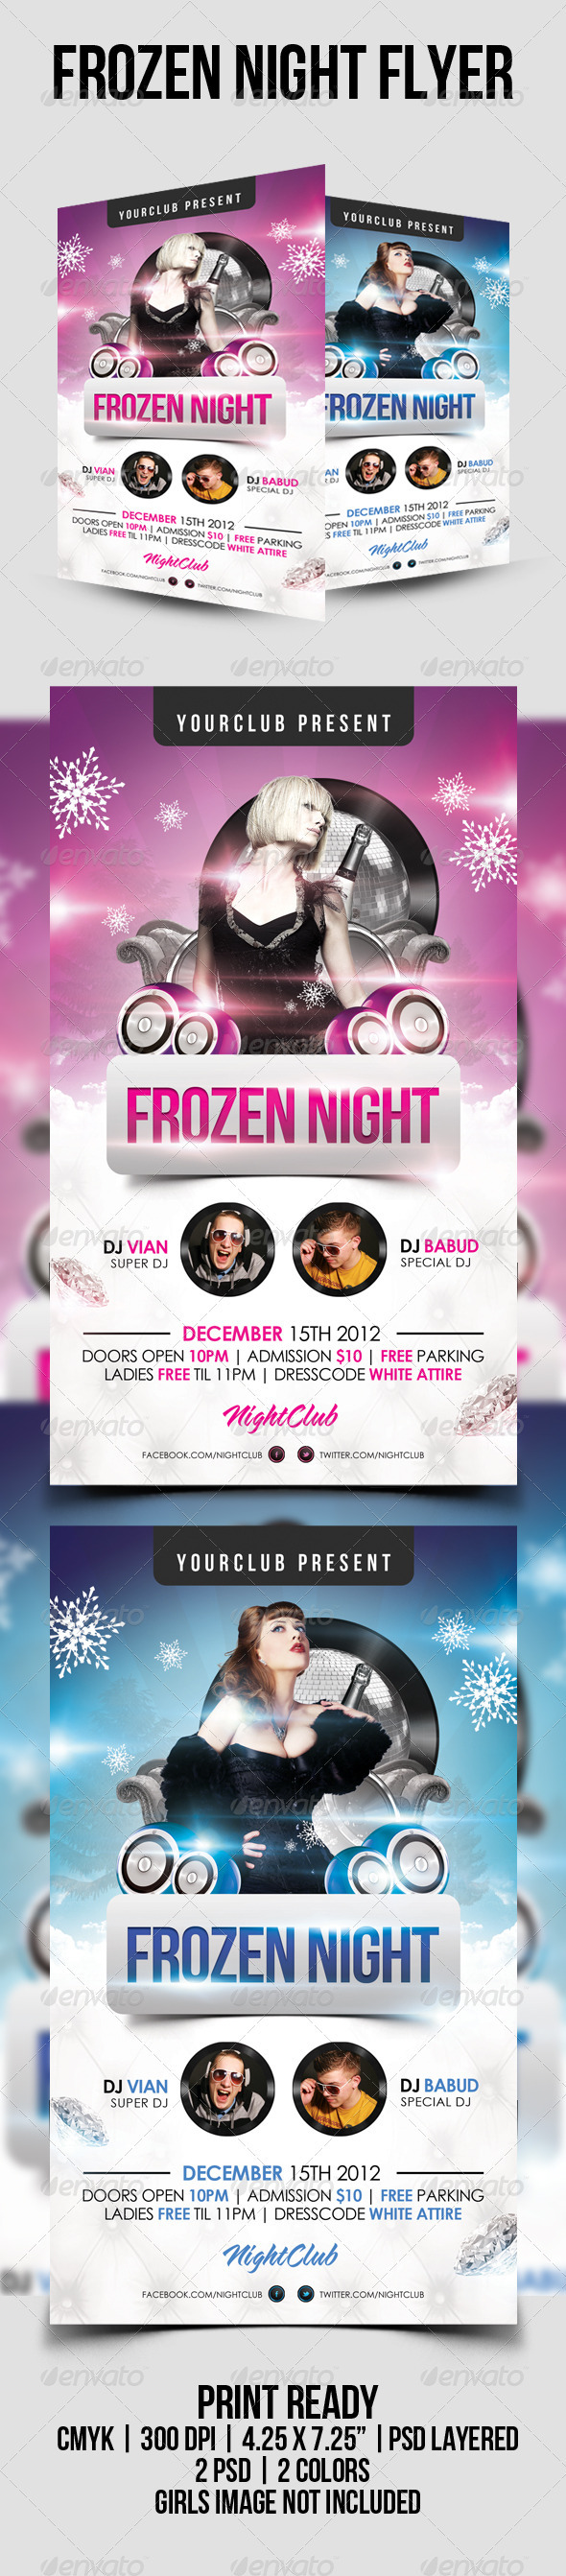 Frozen Night Psd Flyer Template - Clubs & Parties Events